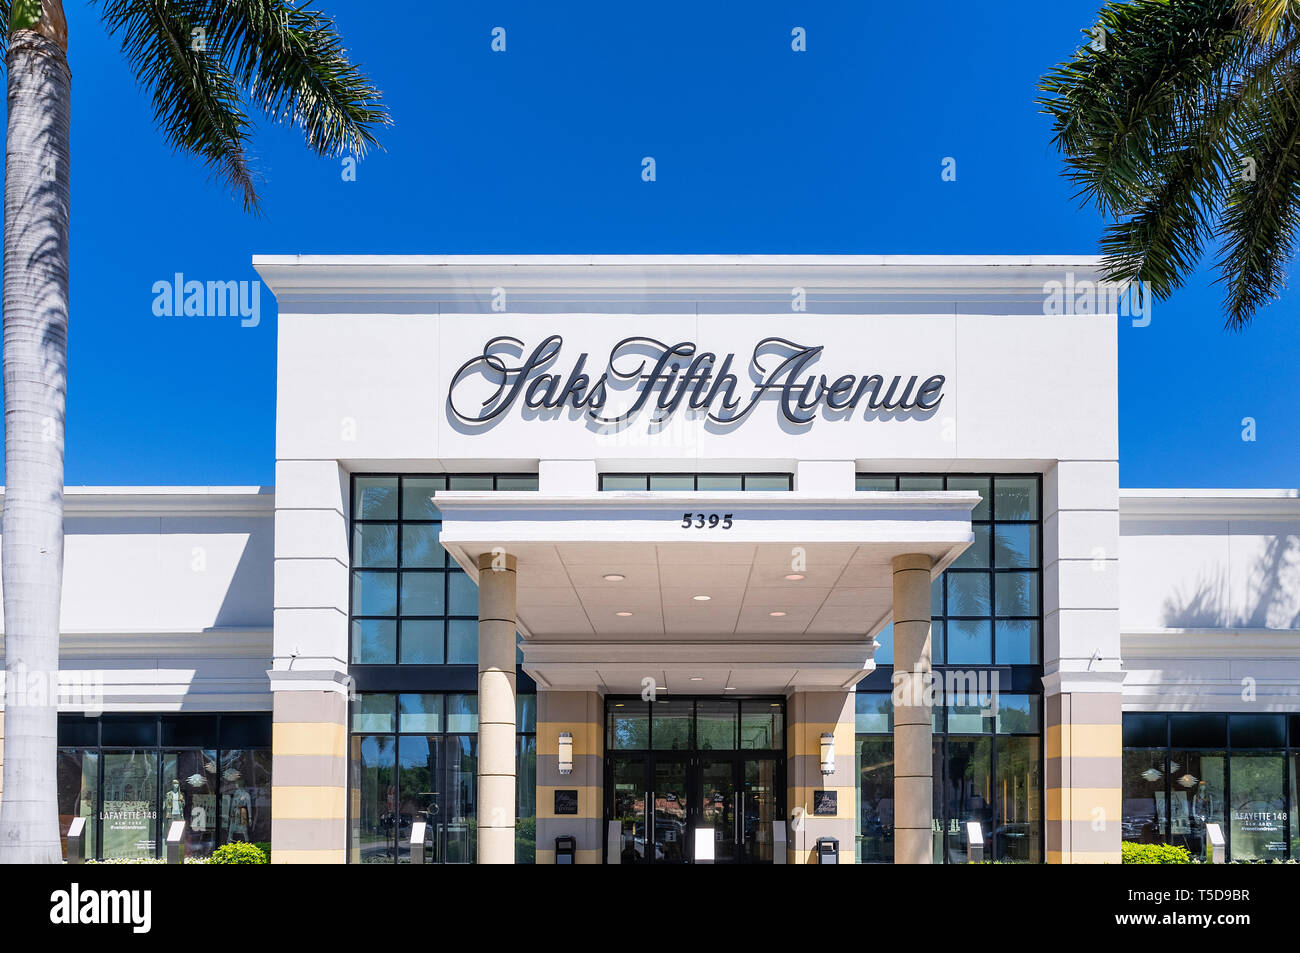 Saks Fifth Avenue store exterior, Waterside Shops, Naples, Florida, USA. - Stock Image